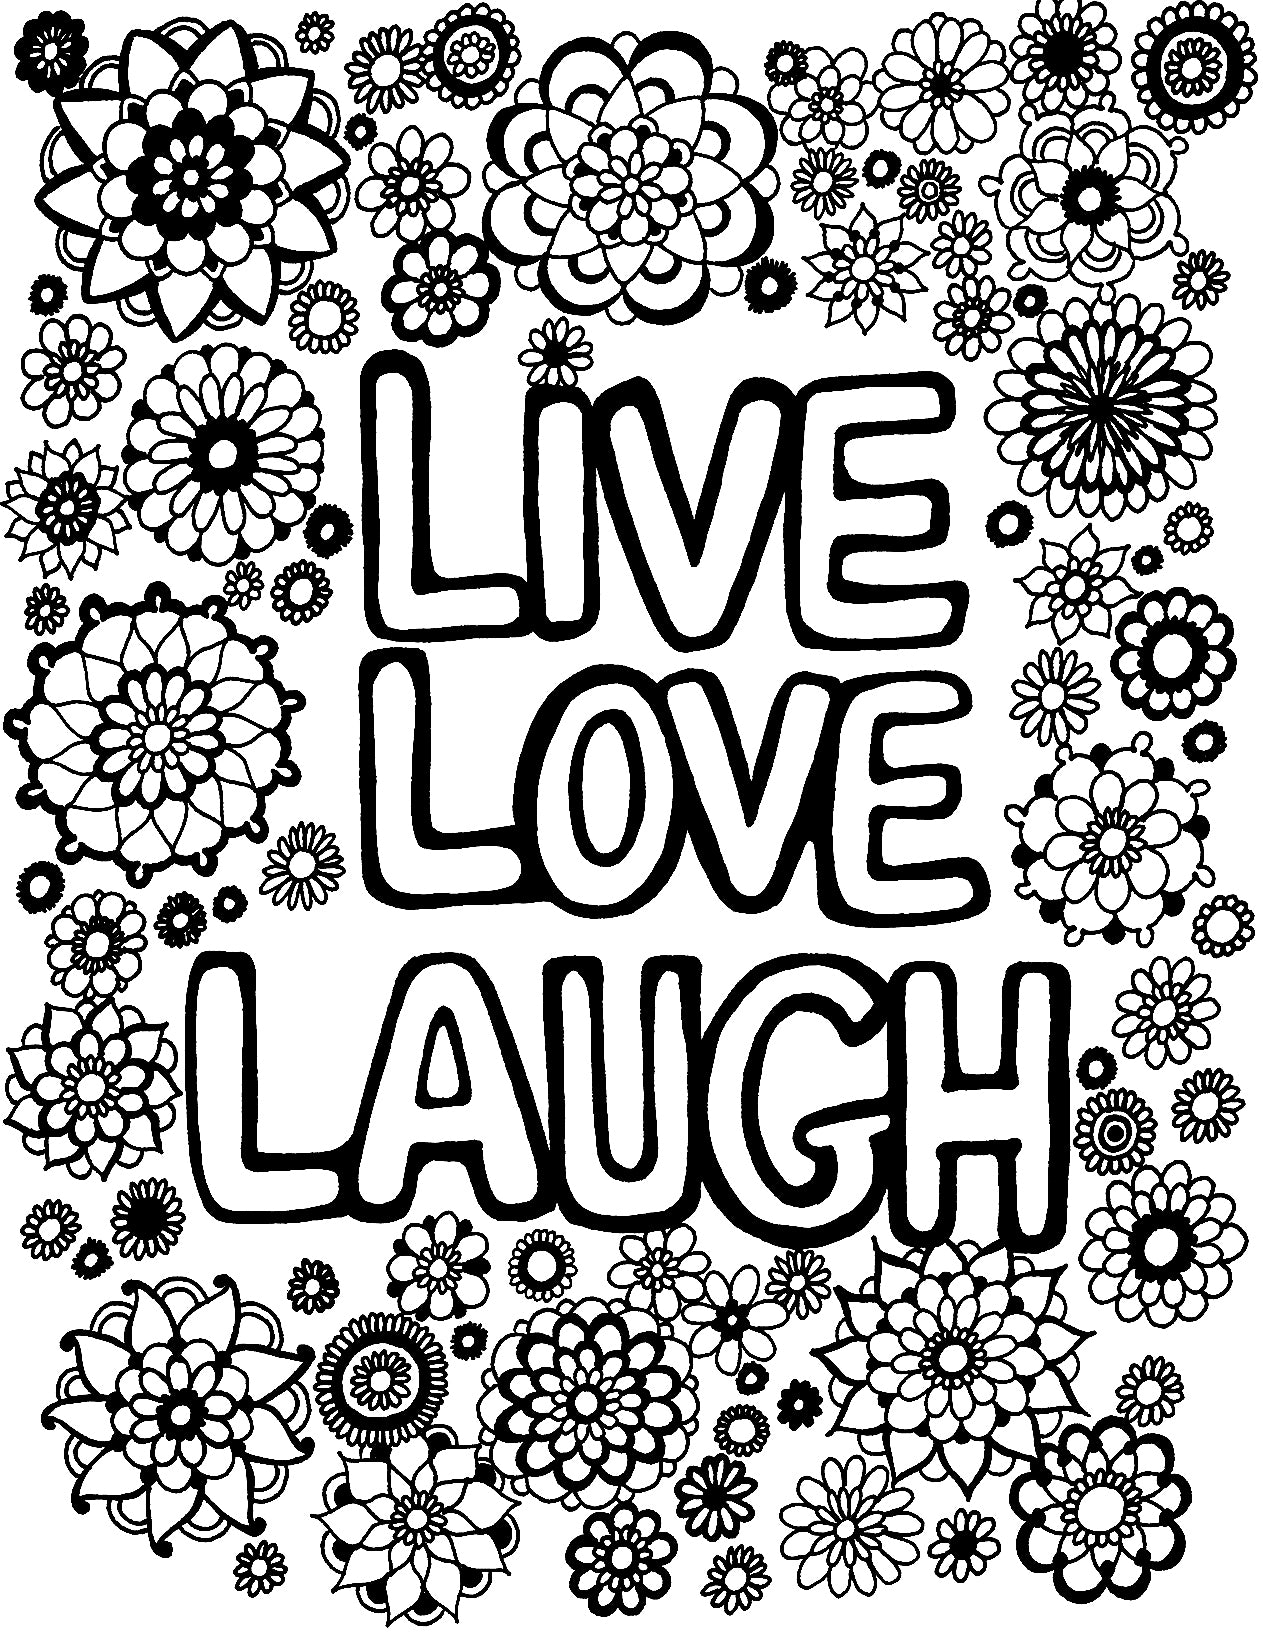 Live Love Laugh - You-Color